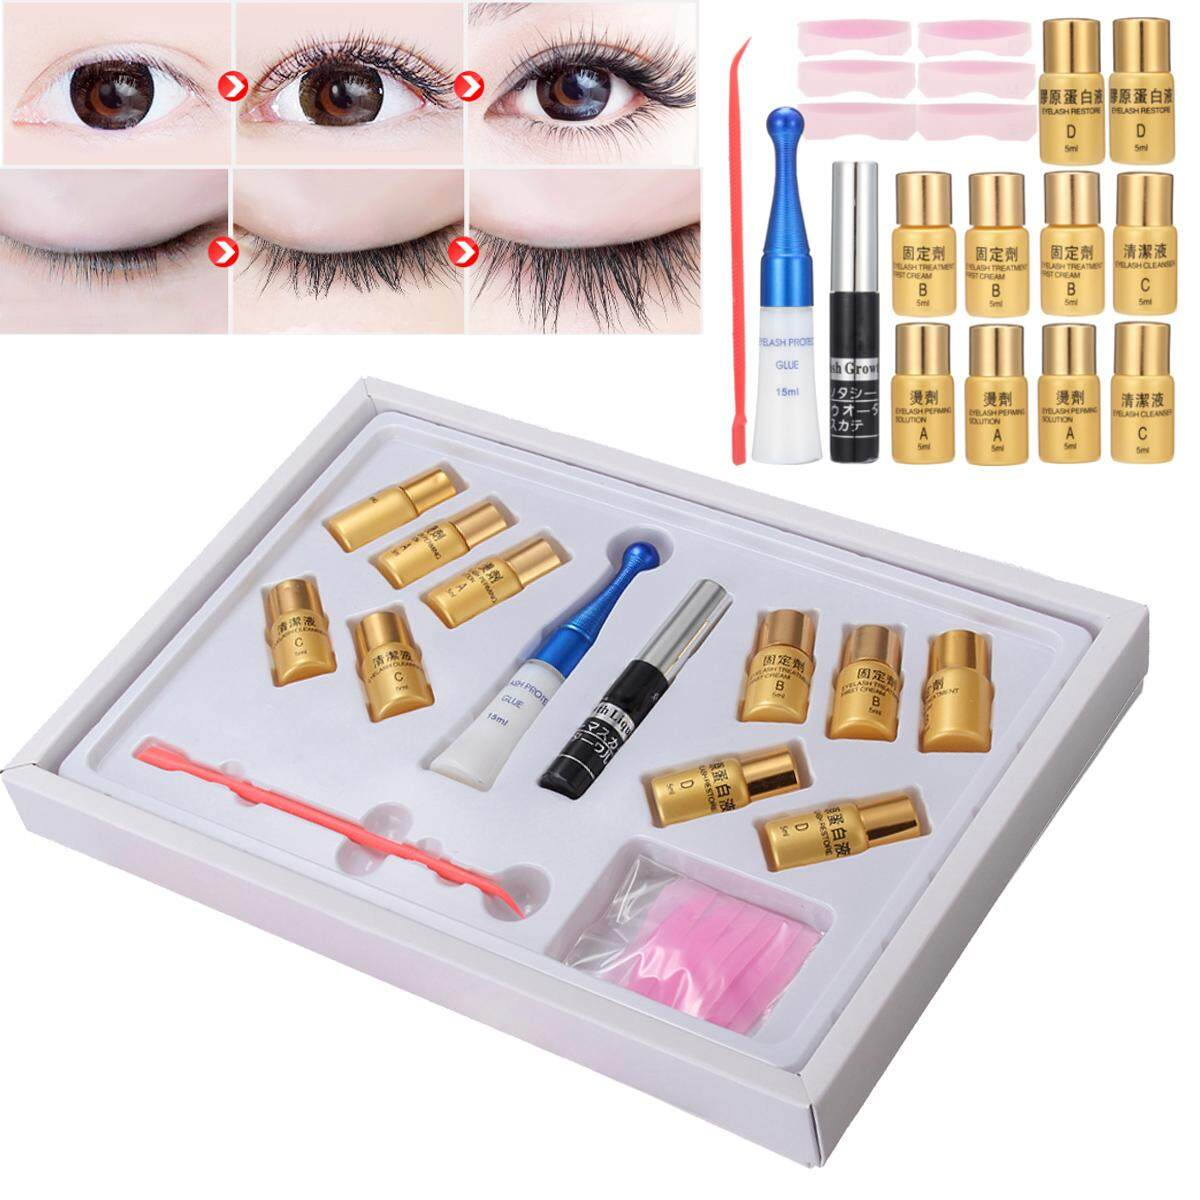 Features Iconsign Lash Lift Eyelash Perming Kit Dan Harga Terbaru